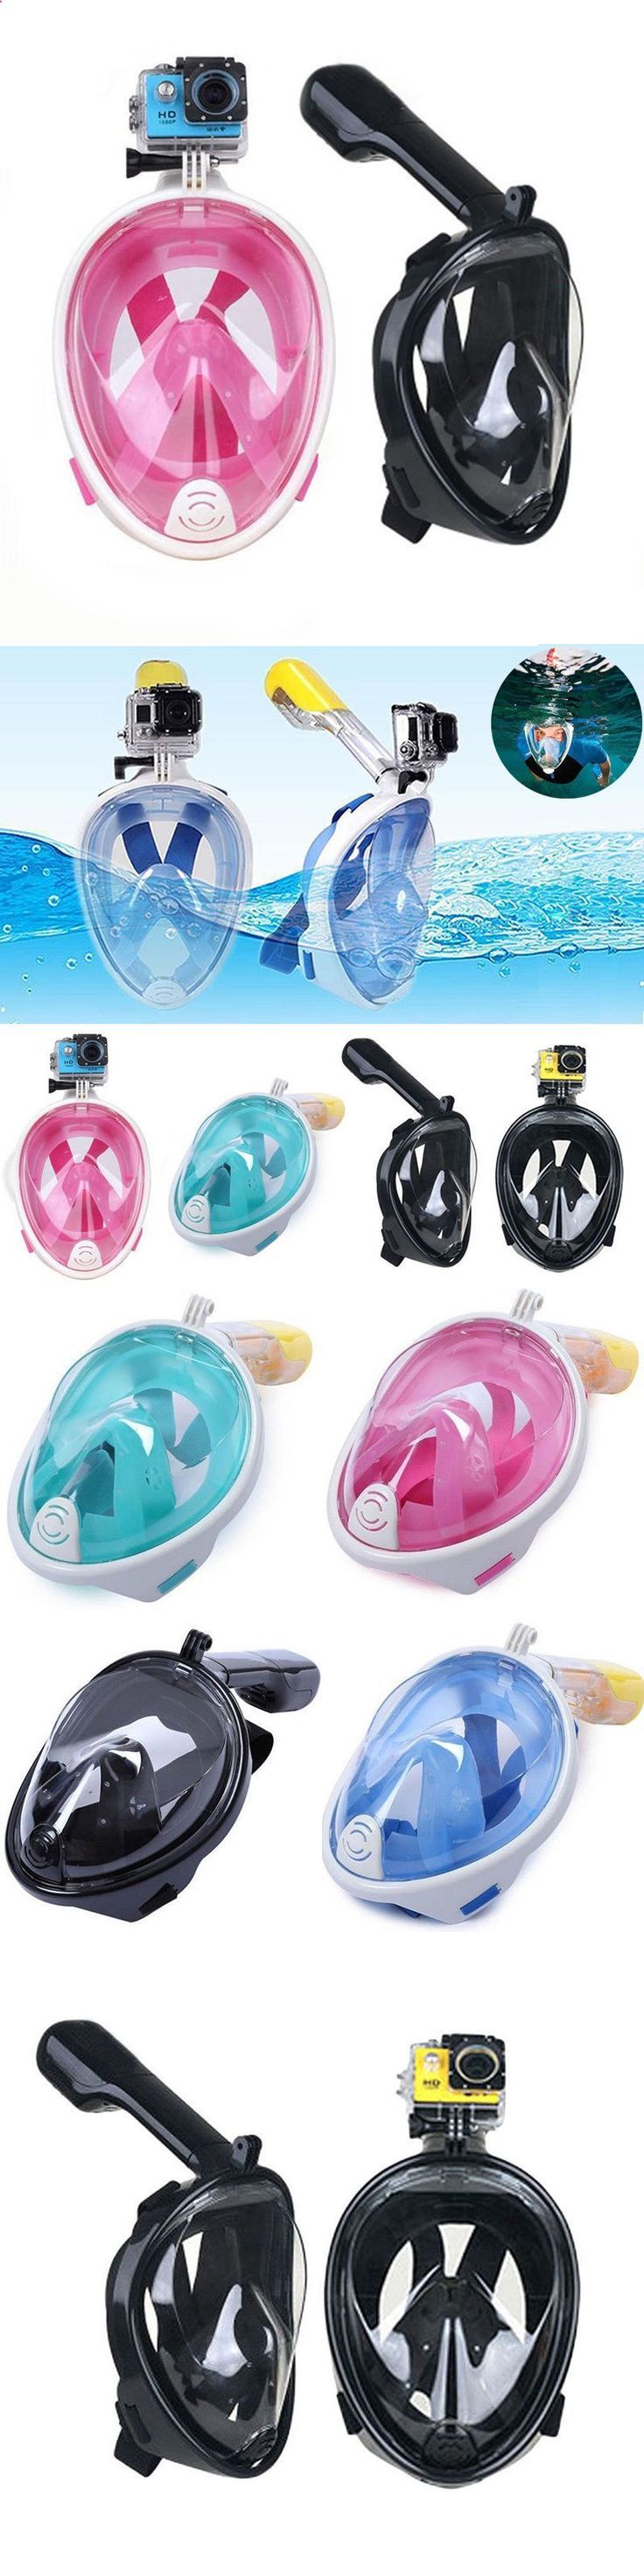 Masks 71161: New 180° Swimming Full Face Mask Surface Diving Snorkel Scuba For Gopro Camera -> BUY IT NOW ONLY: $31.99 on eBay! http://www.deepbluediving.org/scuba-wetsuit-vs-drysuit/